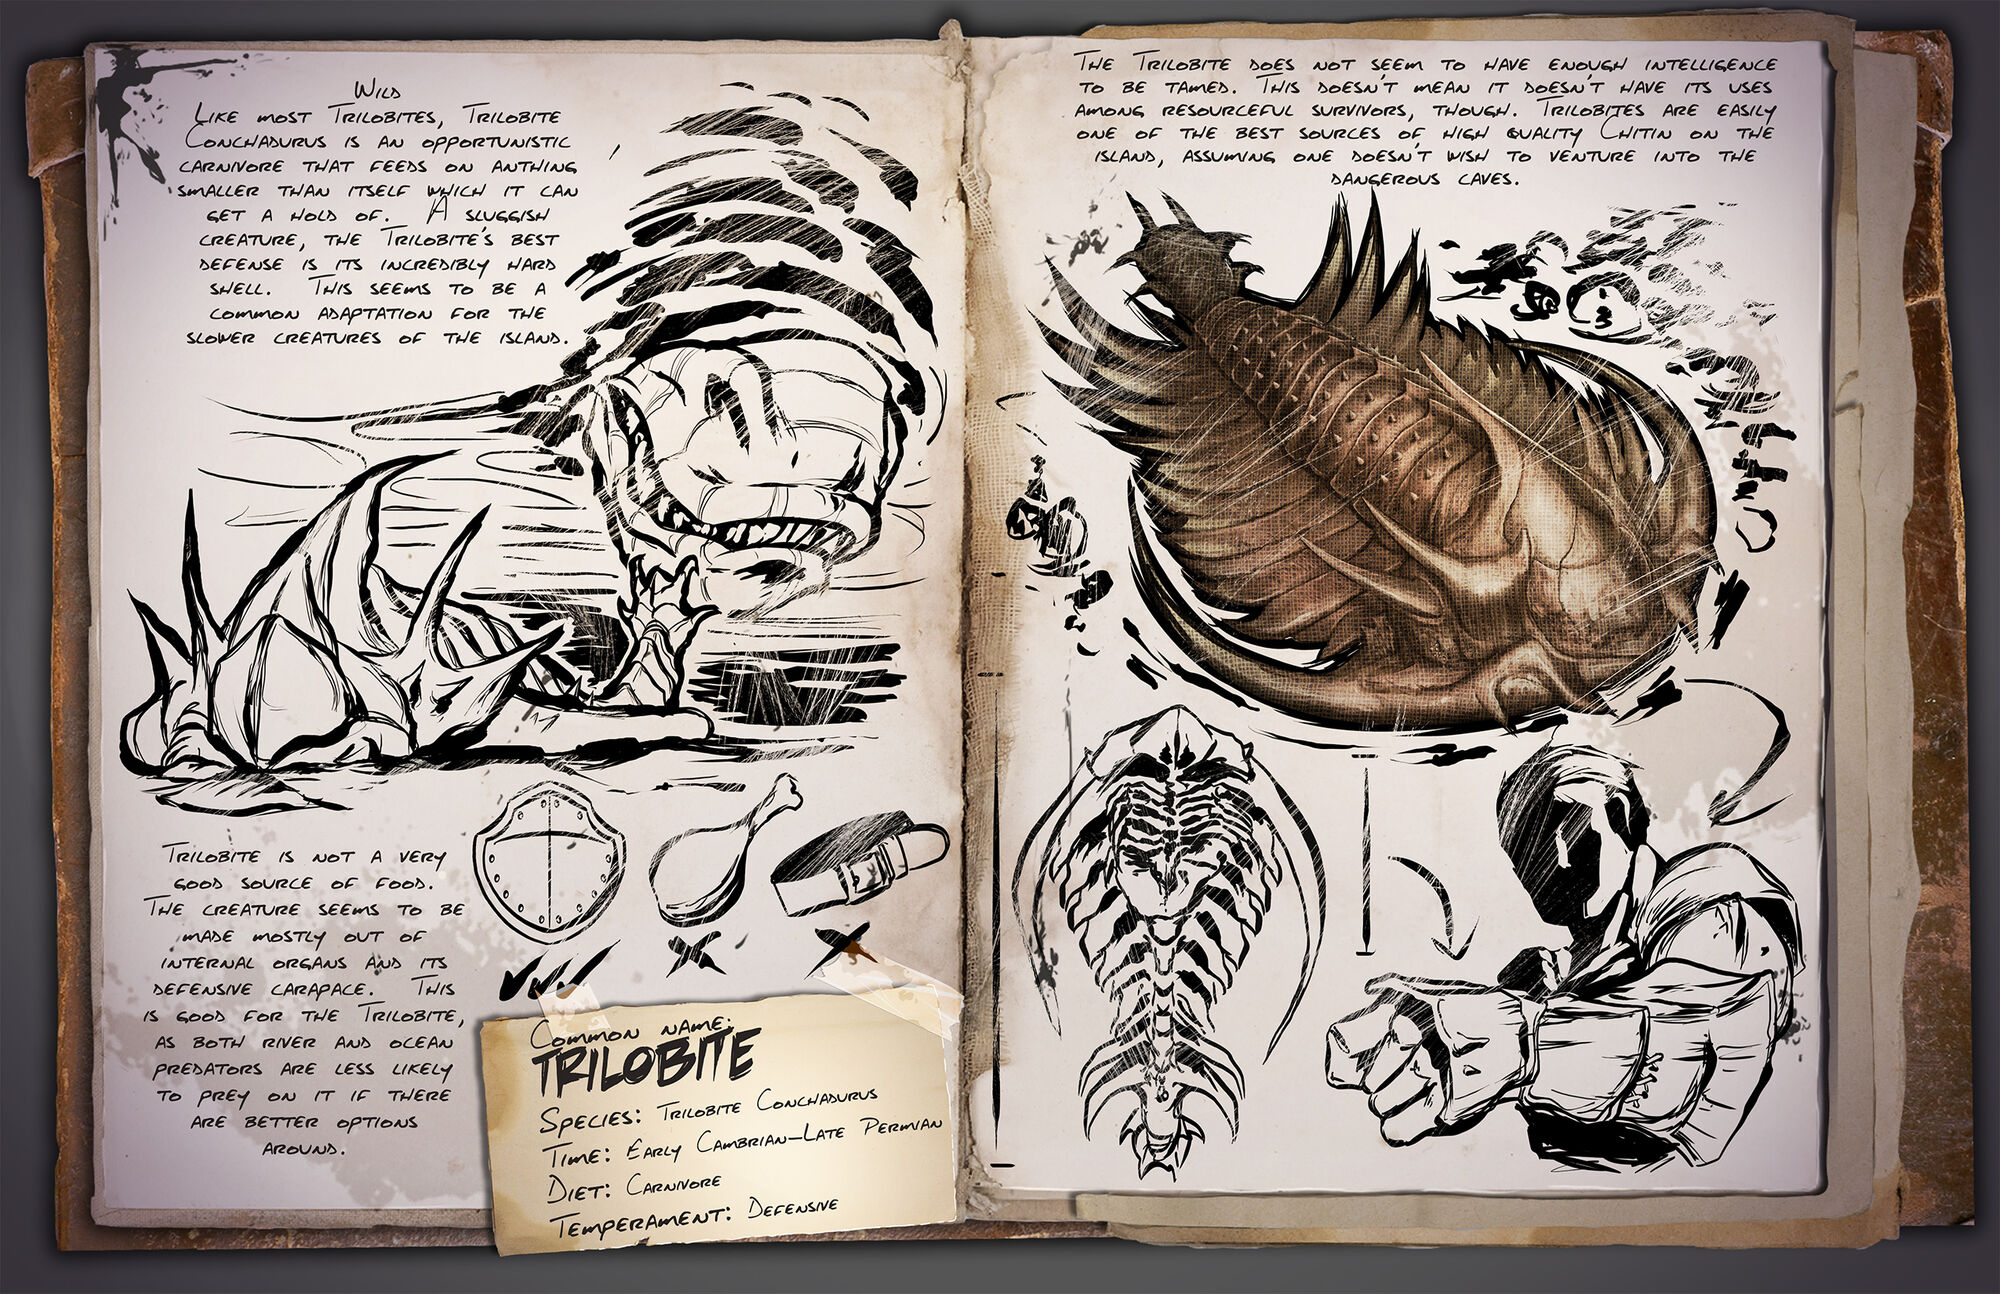 Trilobite | ARK: Survival Evolved Wiki | FANDOM powered by Wikia